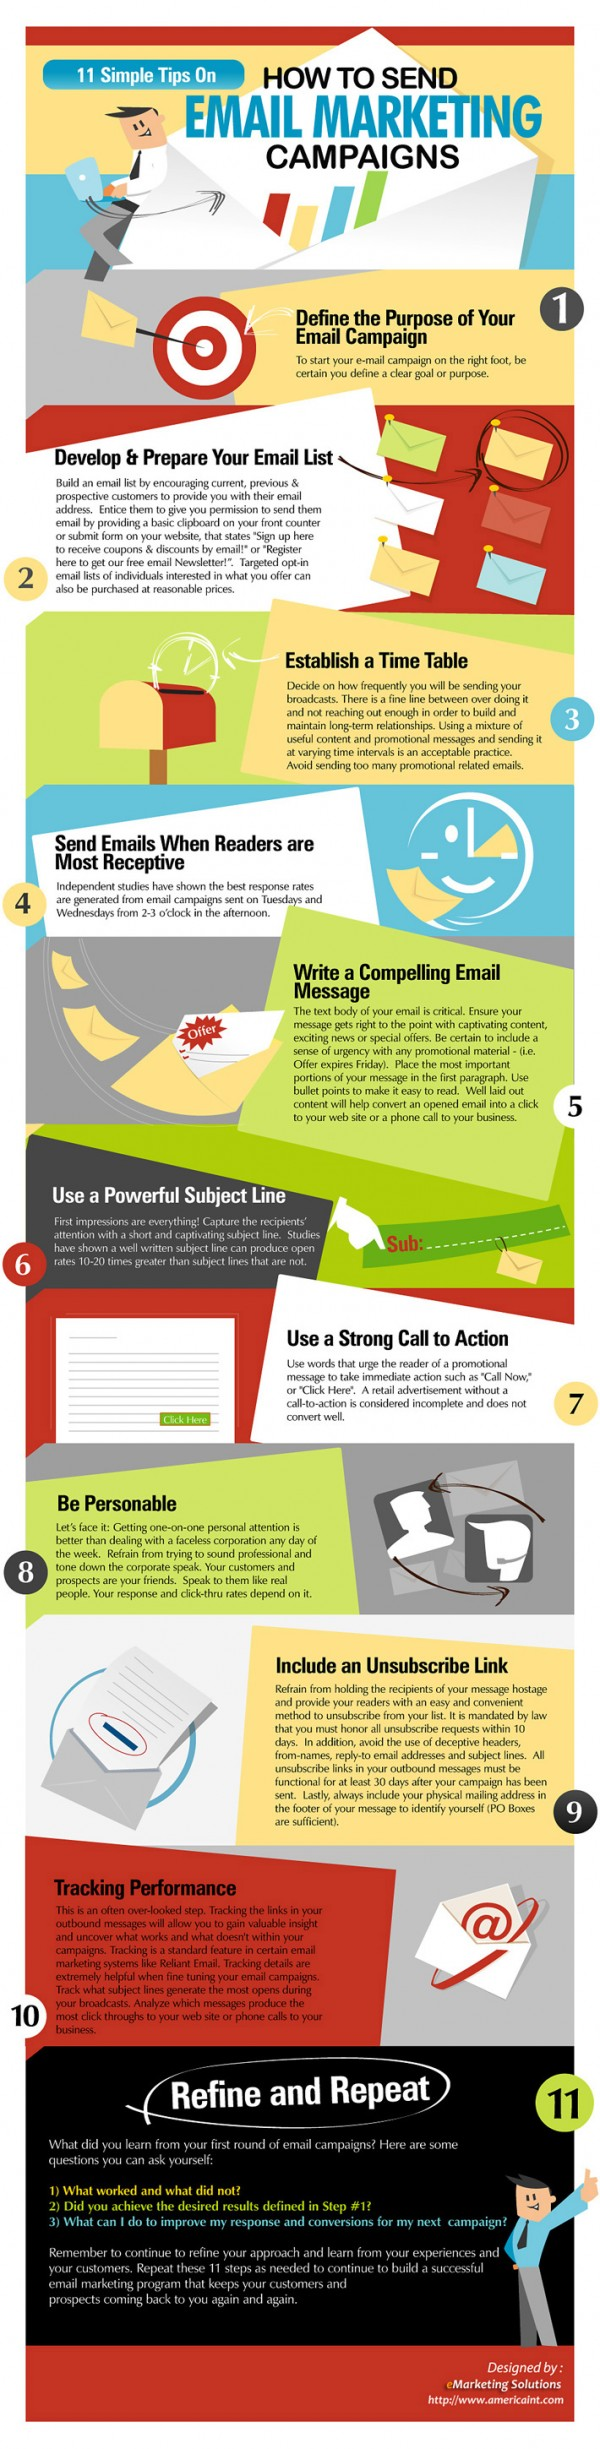 How-To-Send-Email-Marketing